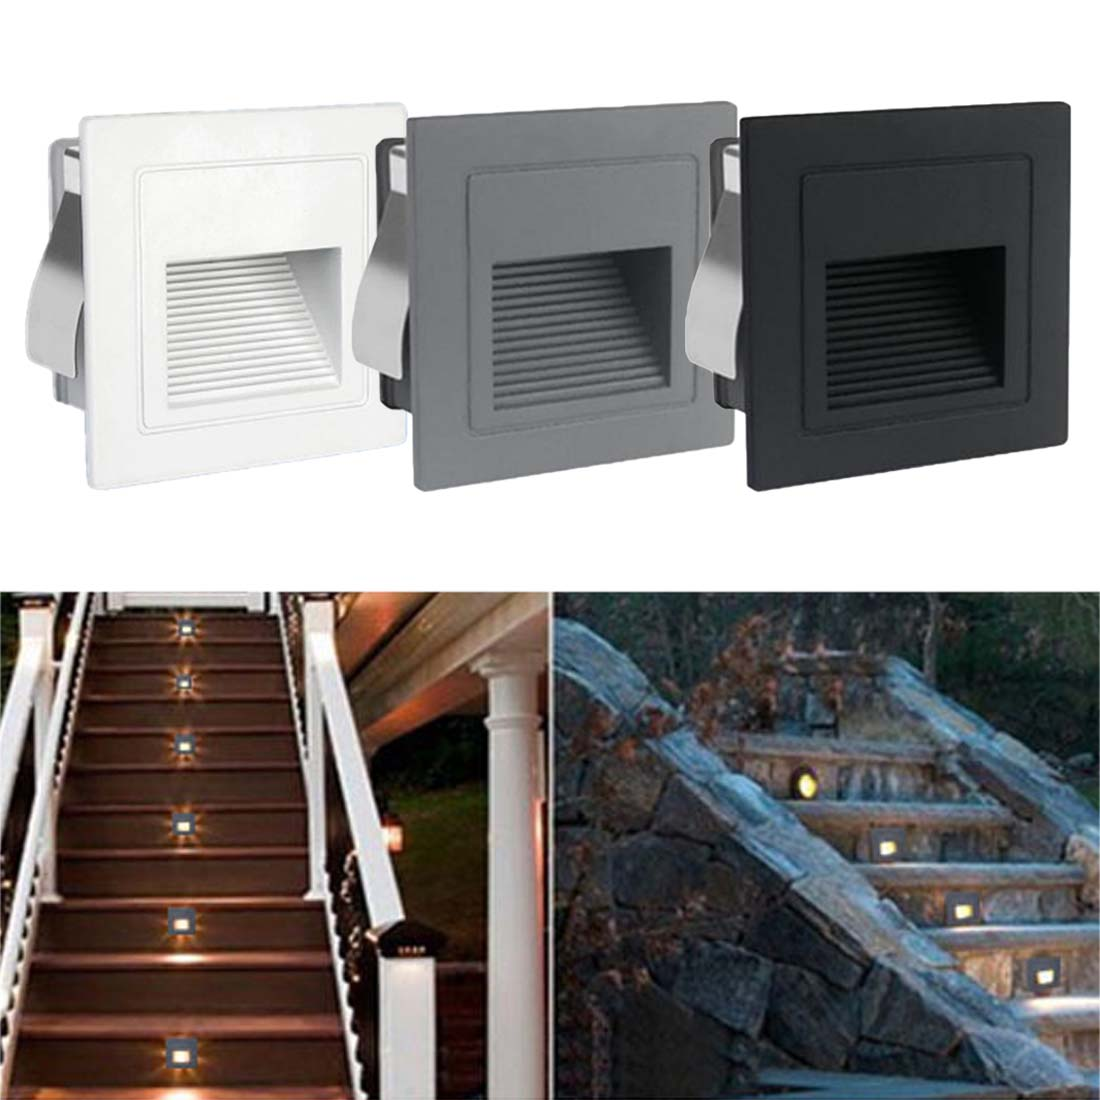 Lighting Basement Washroom Stairs: Indoor PIR Motion Sensor LED Stair Light Recessed Steps